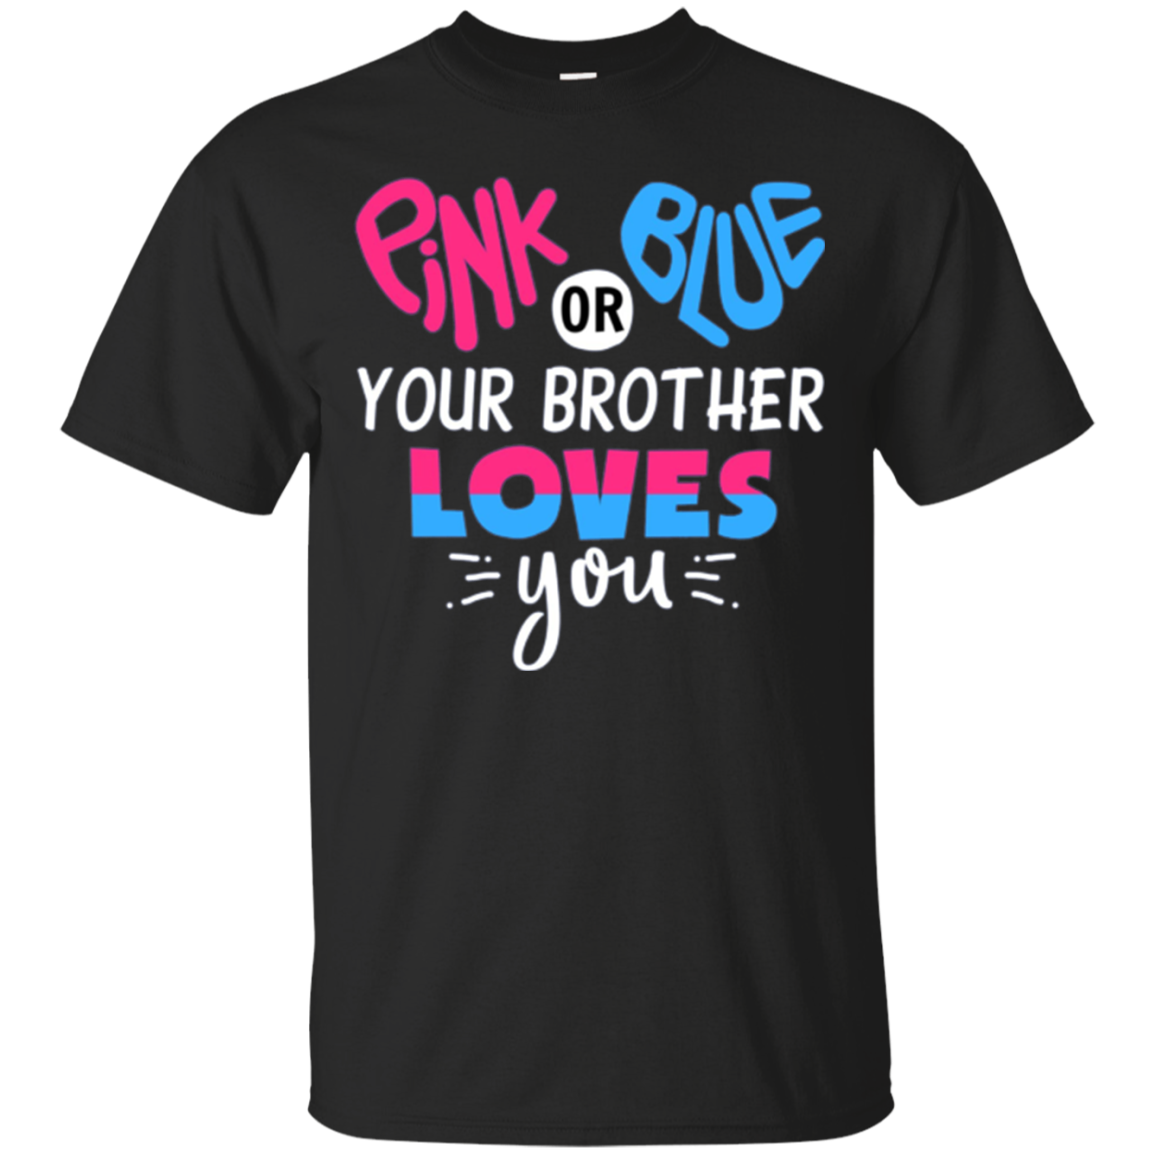 Pink Or Blue Your Brother Loves You - Long Sleeve T-Shirt